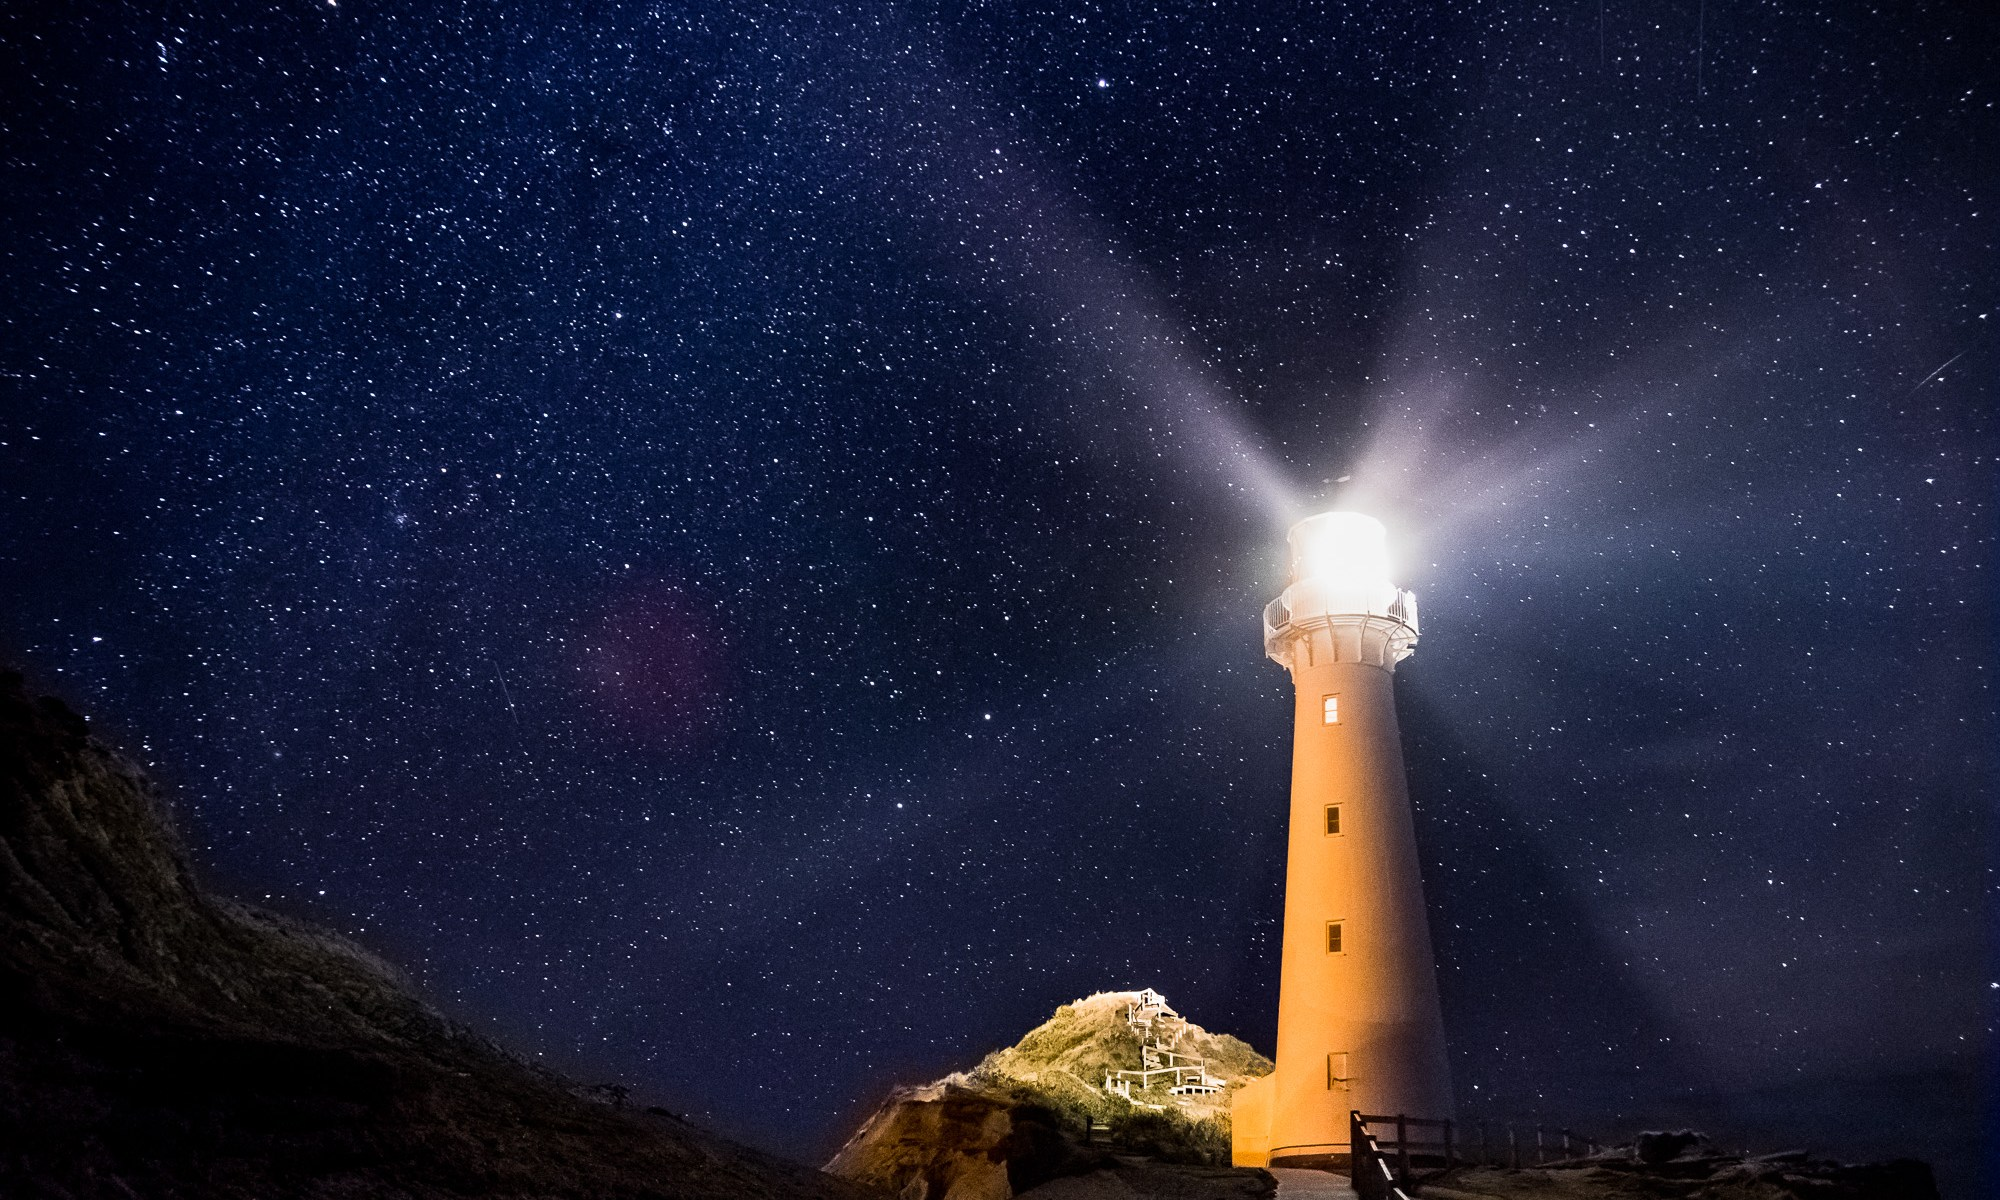 Stars over Castlepoint Lighthouse